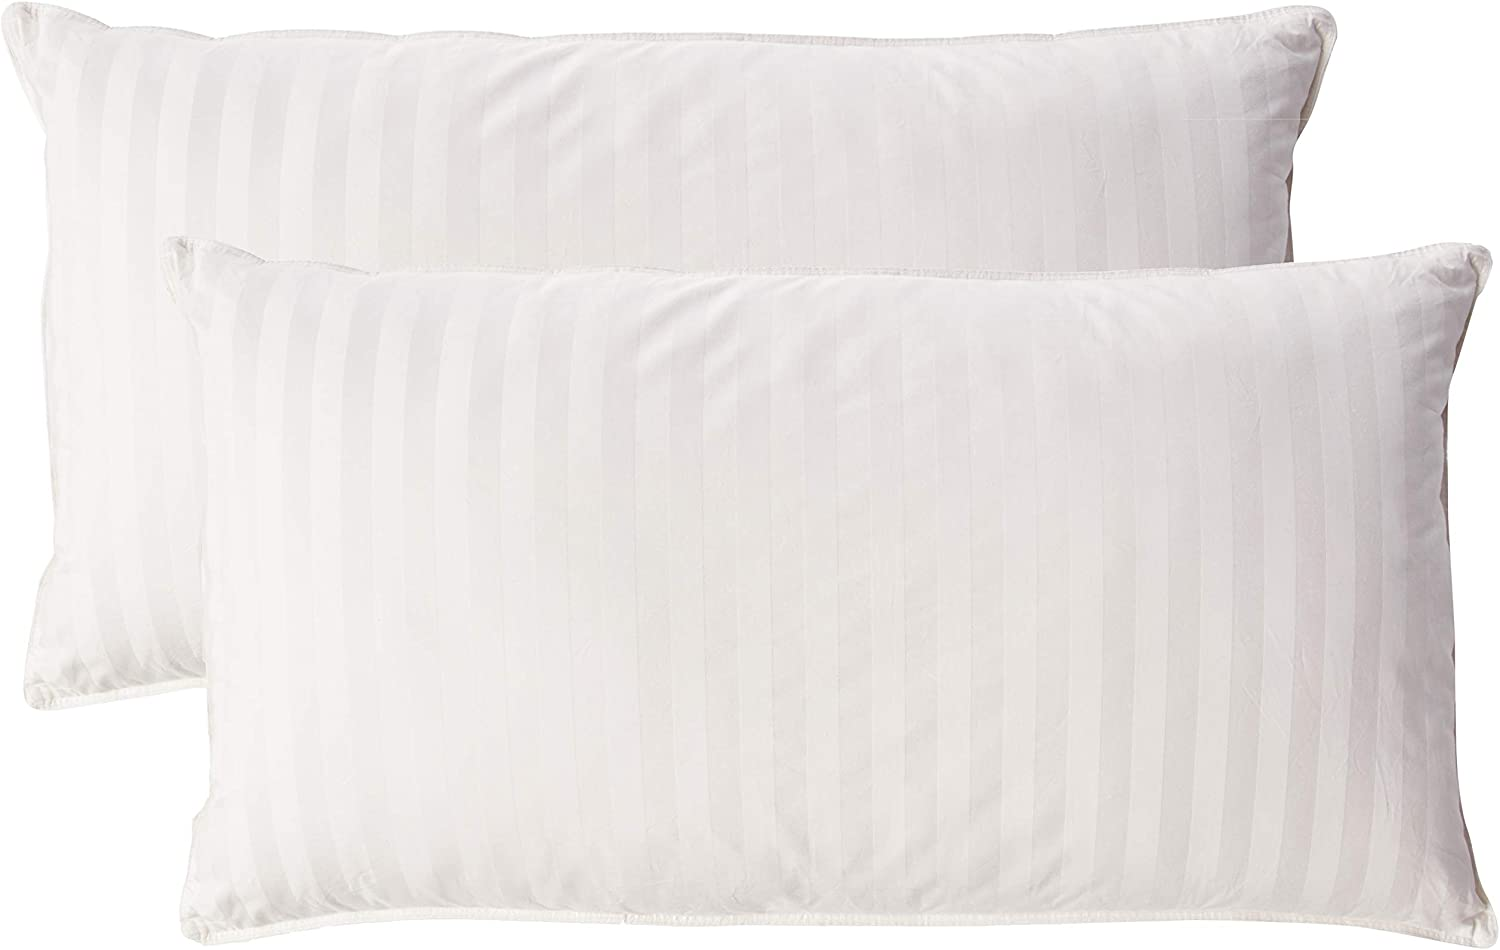 350 Thread Count Hypoallergenic Natural Filled Pillow -Stripe Pattern (Pack of 2)